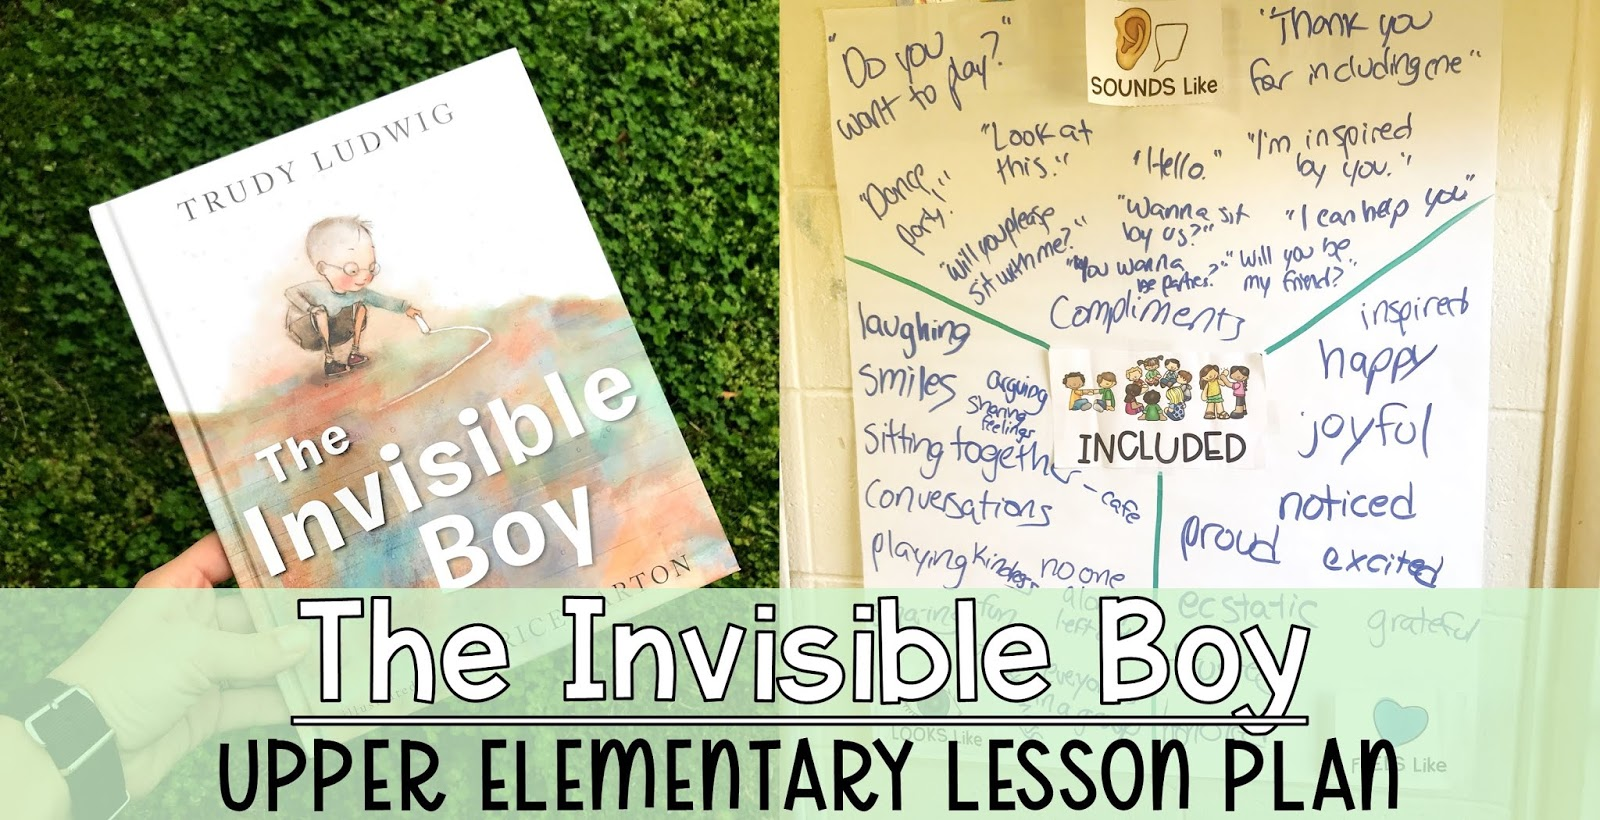 How Can So Many Students Be Invisible >> The Invisible Boy Lesson Plan For Upper Elementary